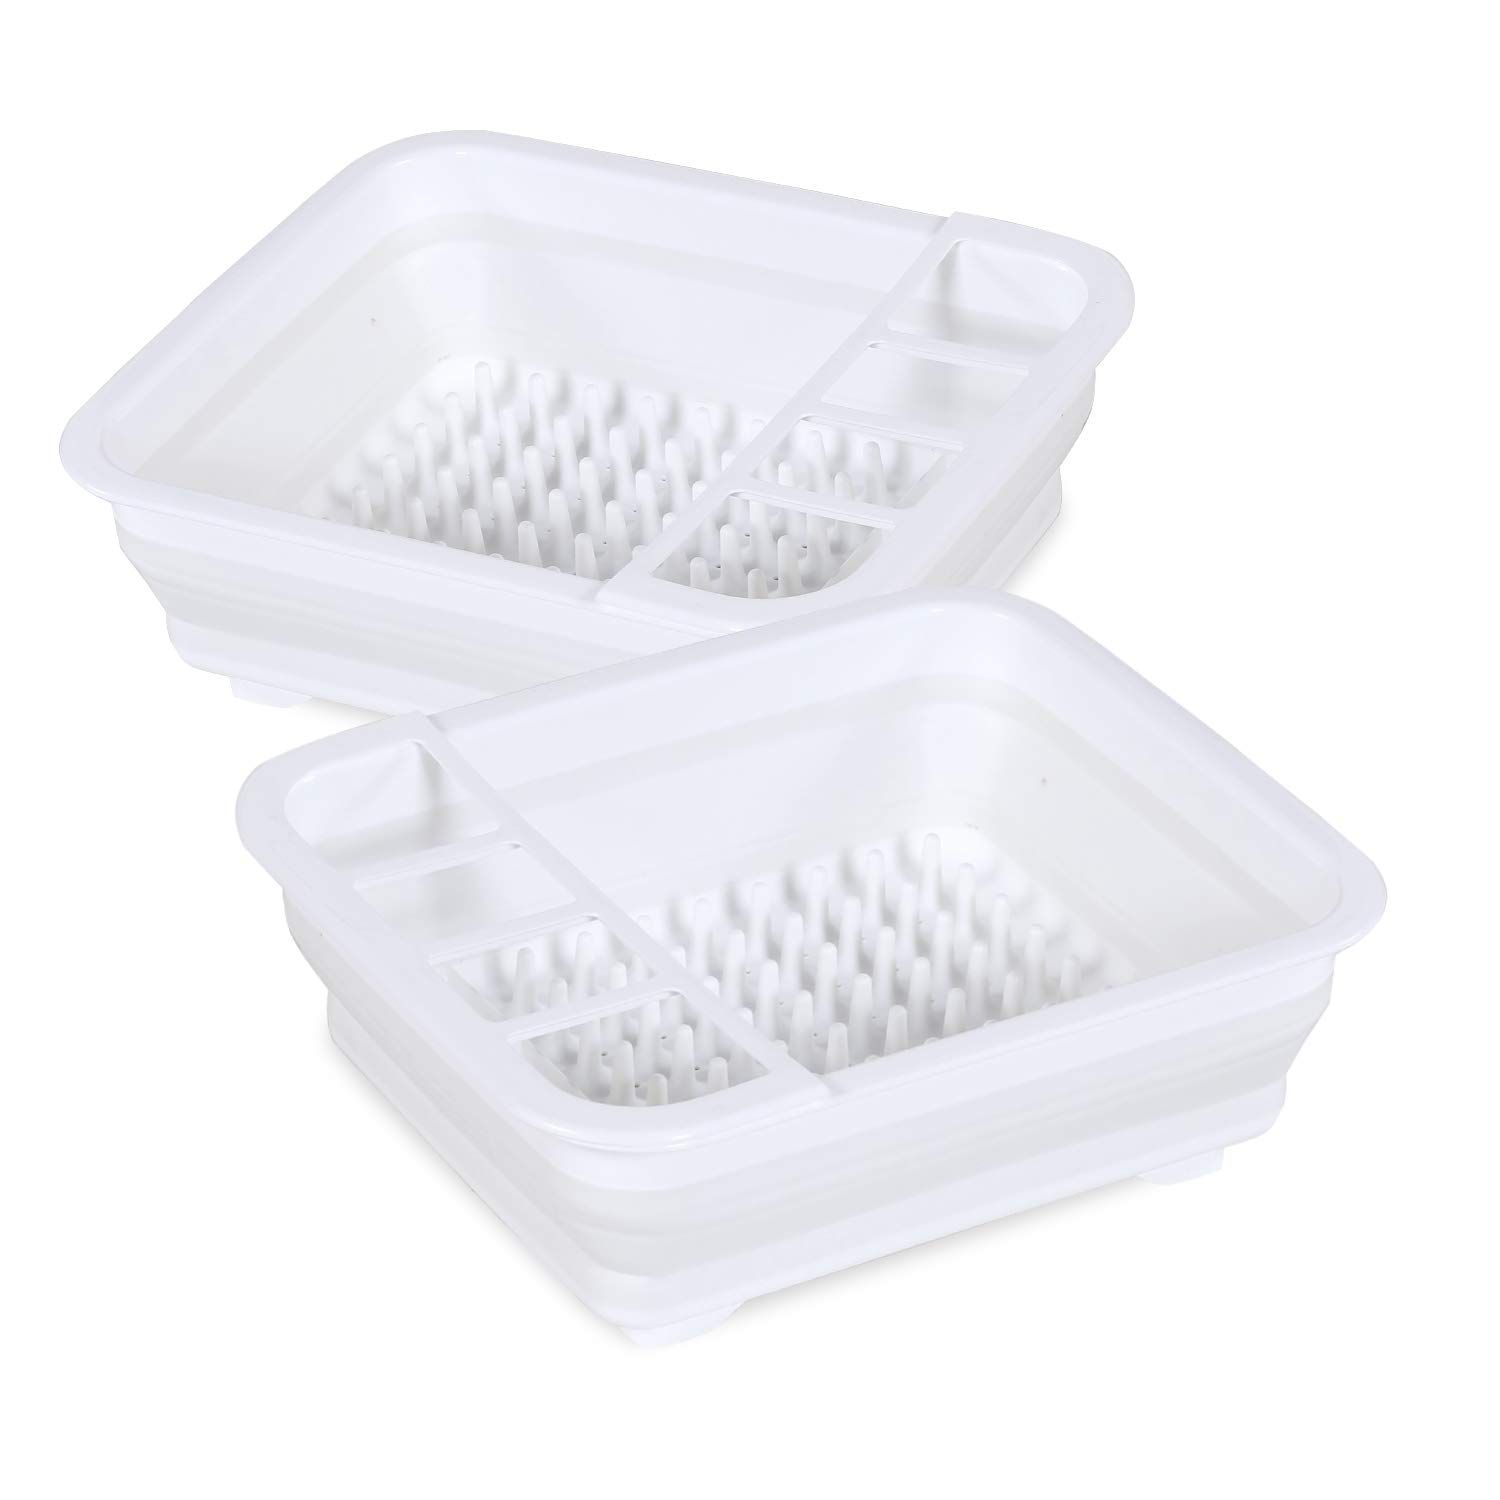 Flamingo P Easy Storage Collapsible Dish Rack and Drainer with Cutlery Holder Kitchen Compact Dish Rack White Plastic, 2 Pack